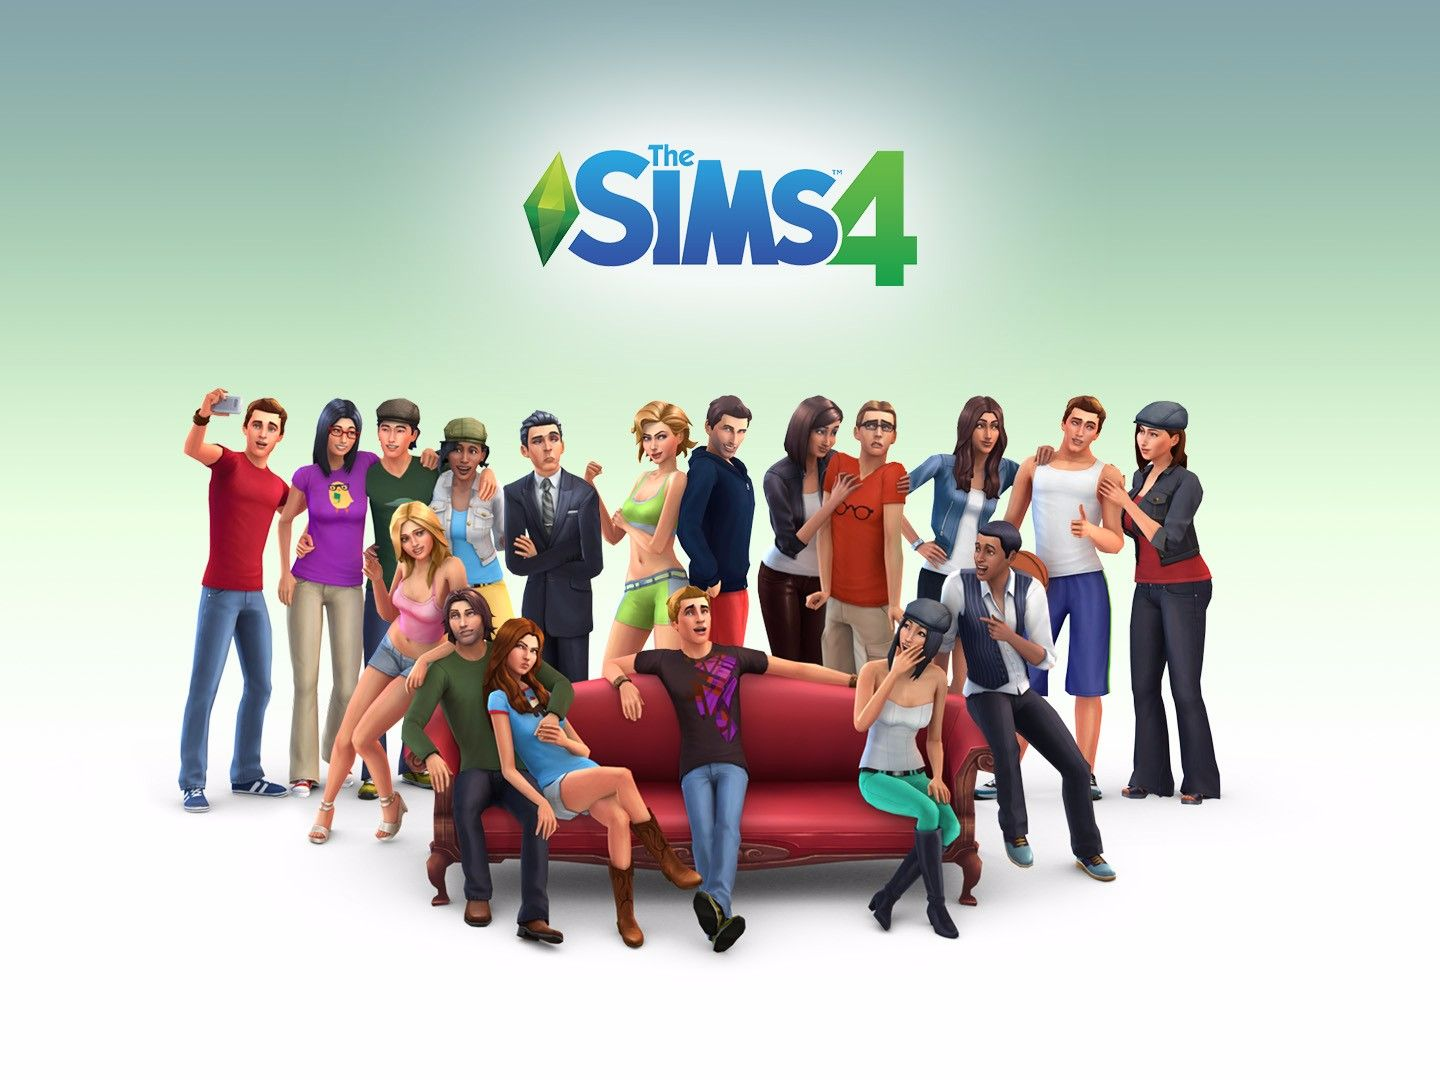 Sims Online Multiplayer The Sims 4 Crack Key Activation Code Origin Download For